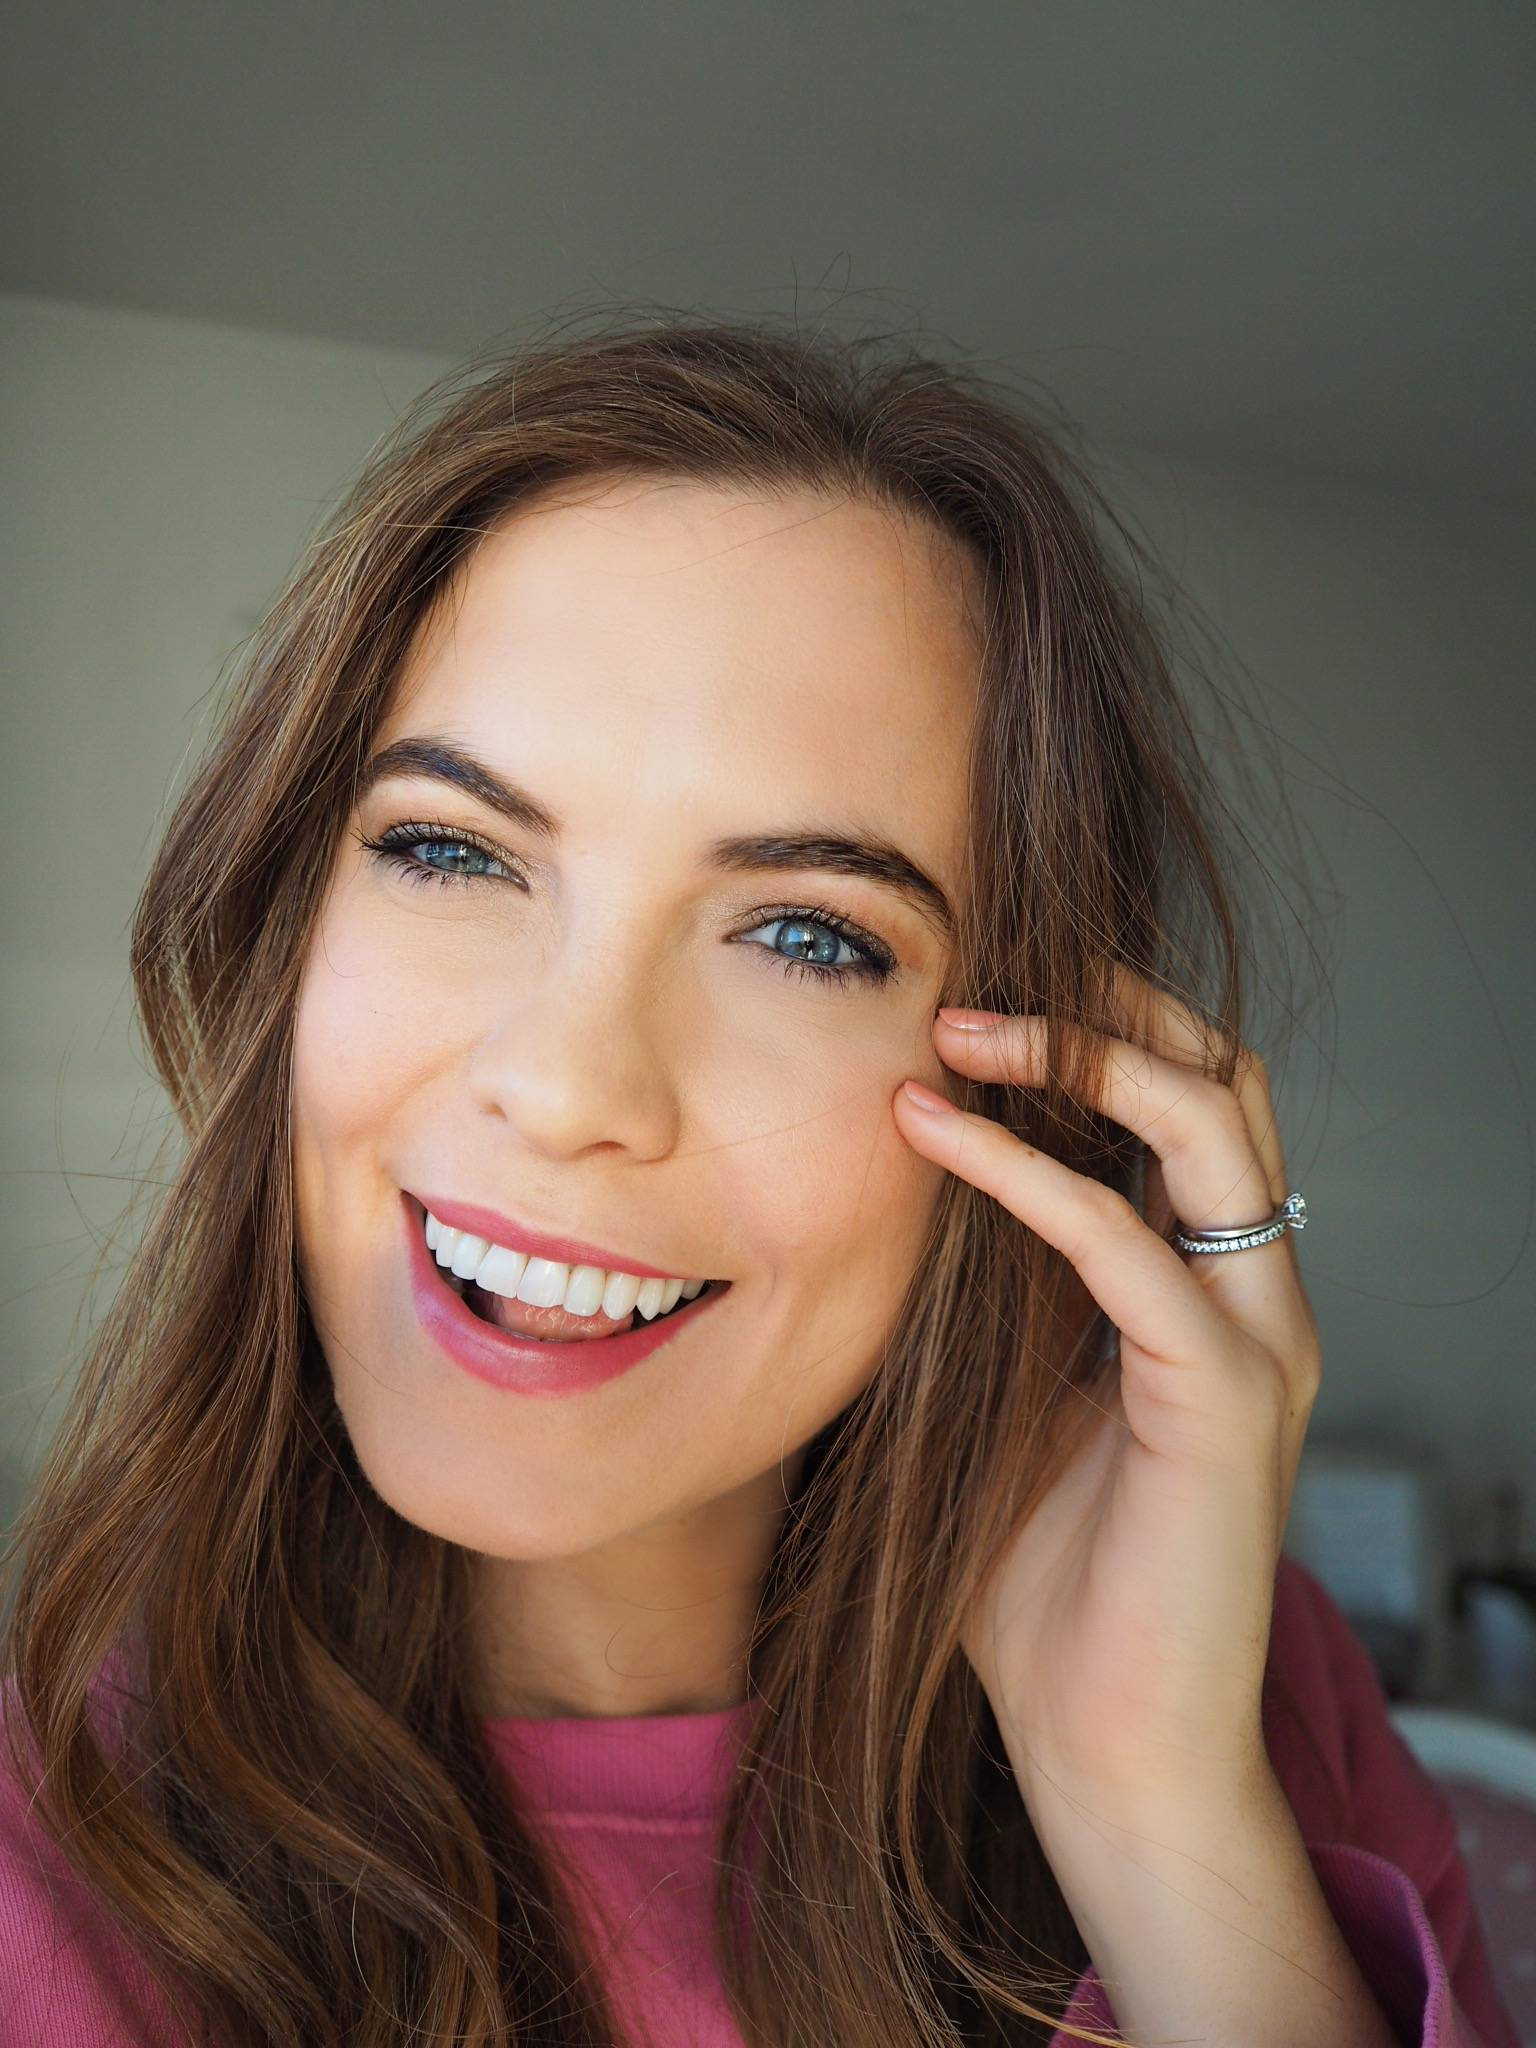 EASY FESTIVE PARTY MAKE UP LOOK | Megan Taylor